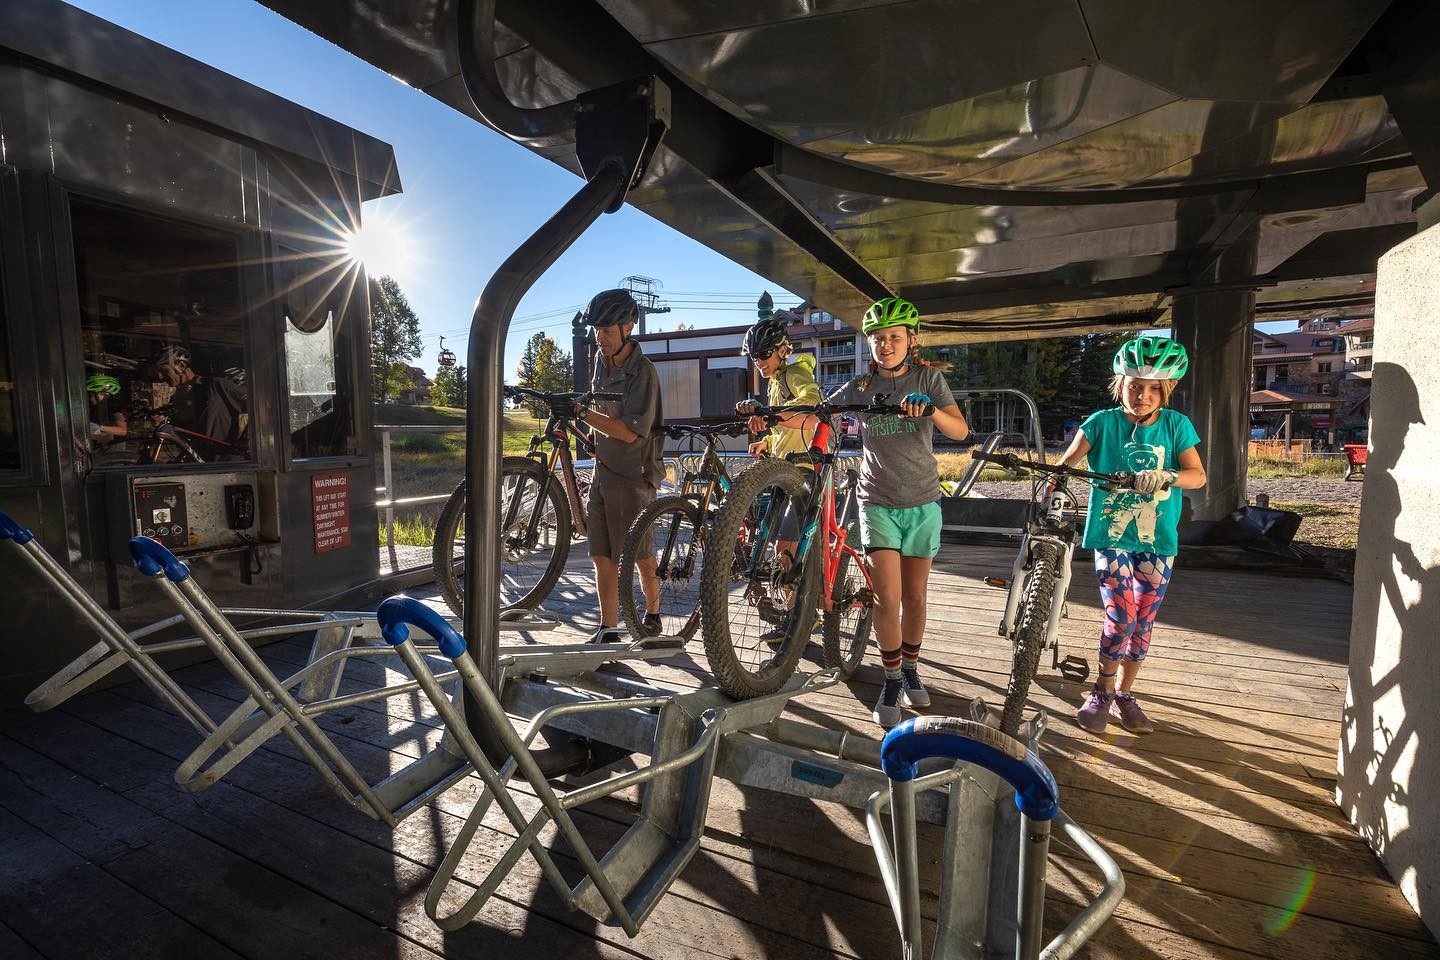 Image of people putting their bikes on the ski lift at Telluride Resort in Colorado